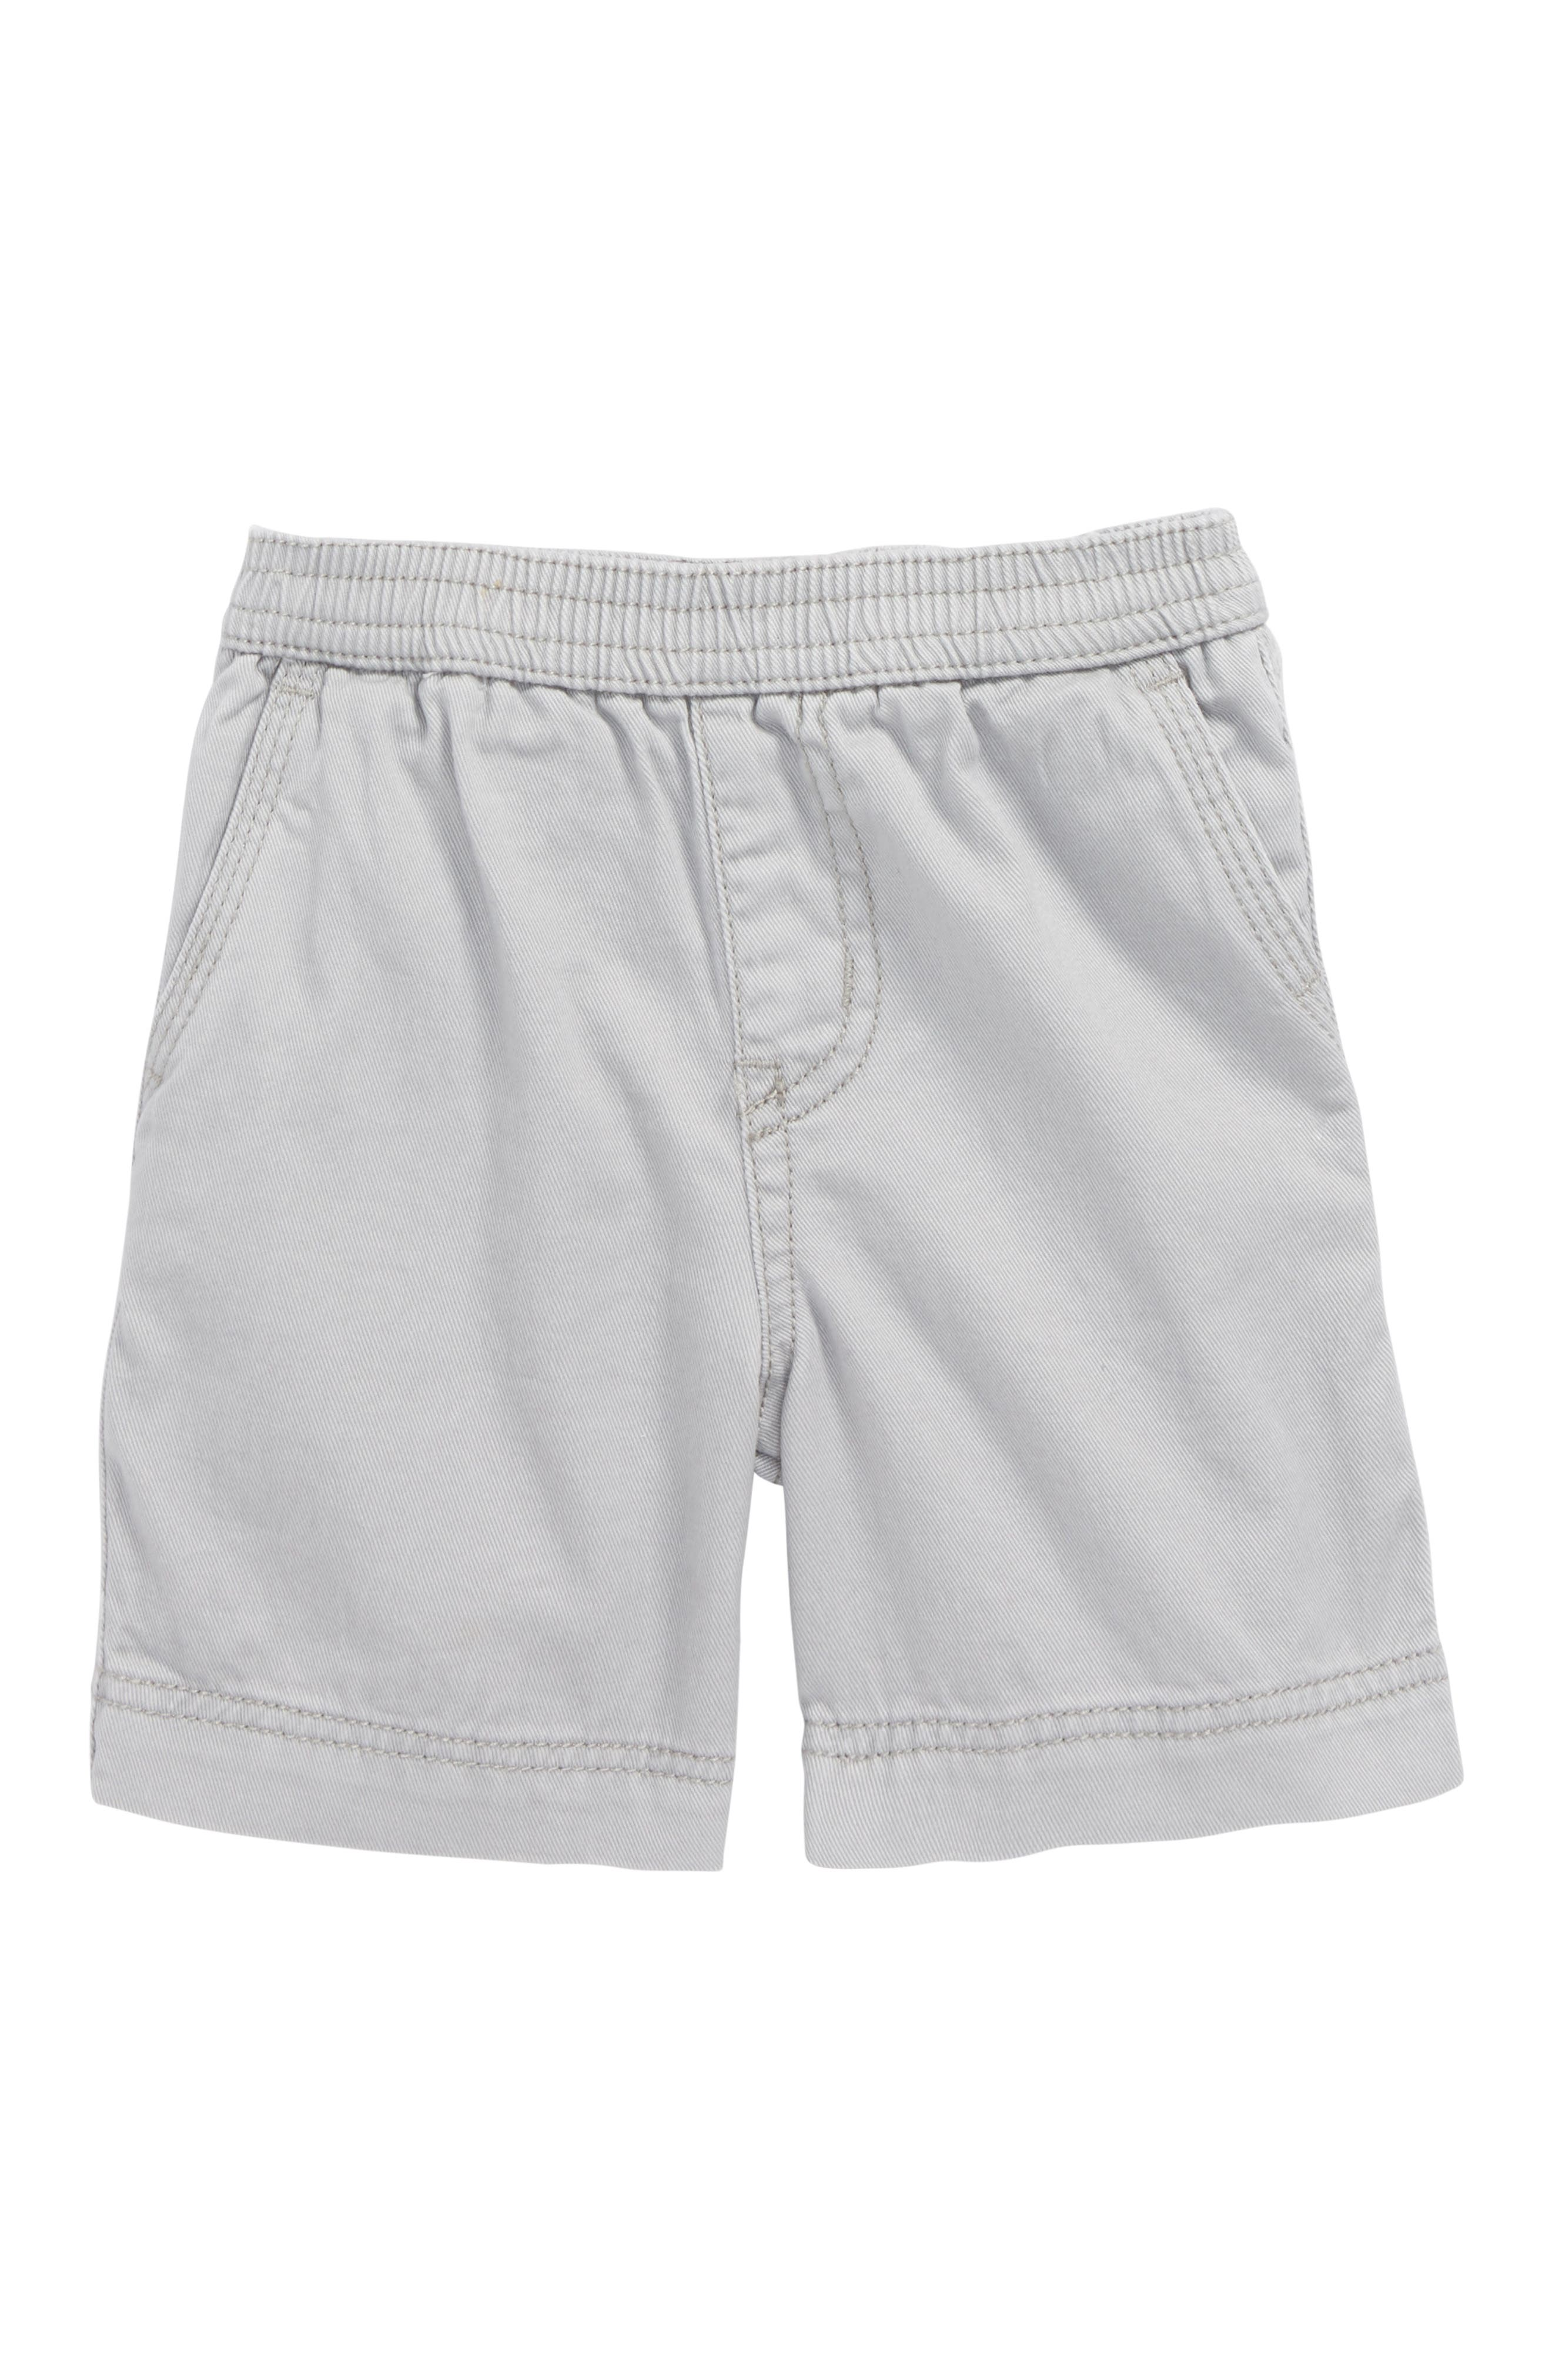 Easy Does It Twill Shorts,                             Main thumbnail 1, color,                             Storm Grey